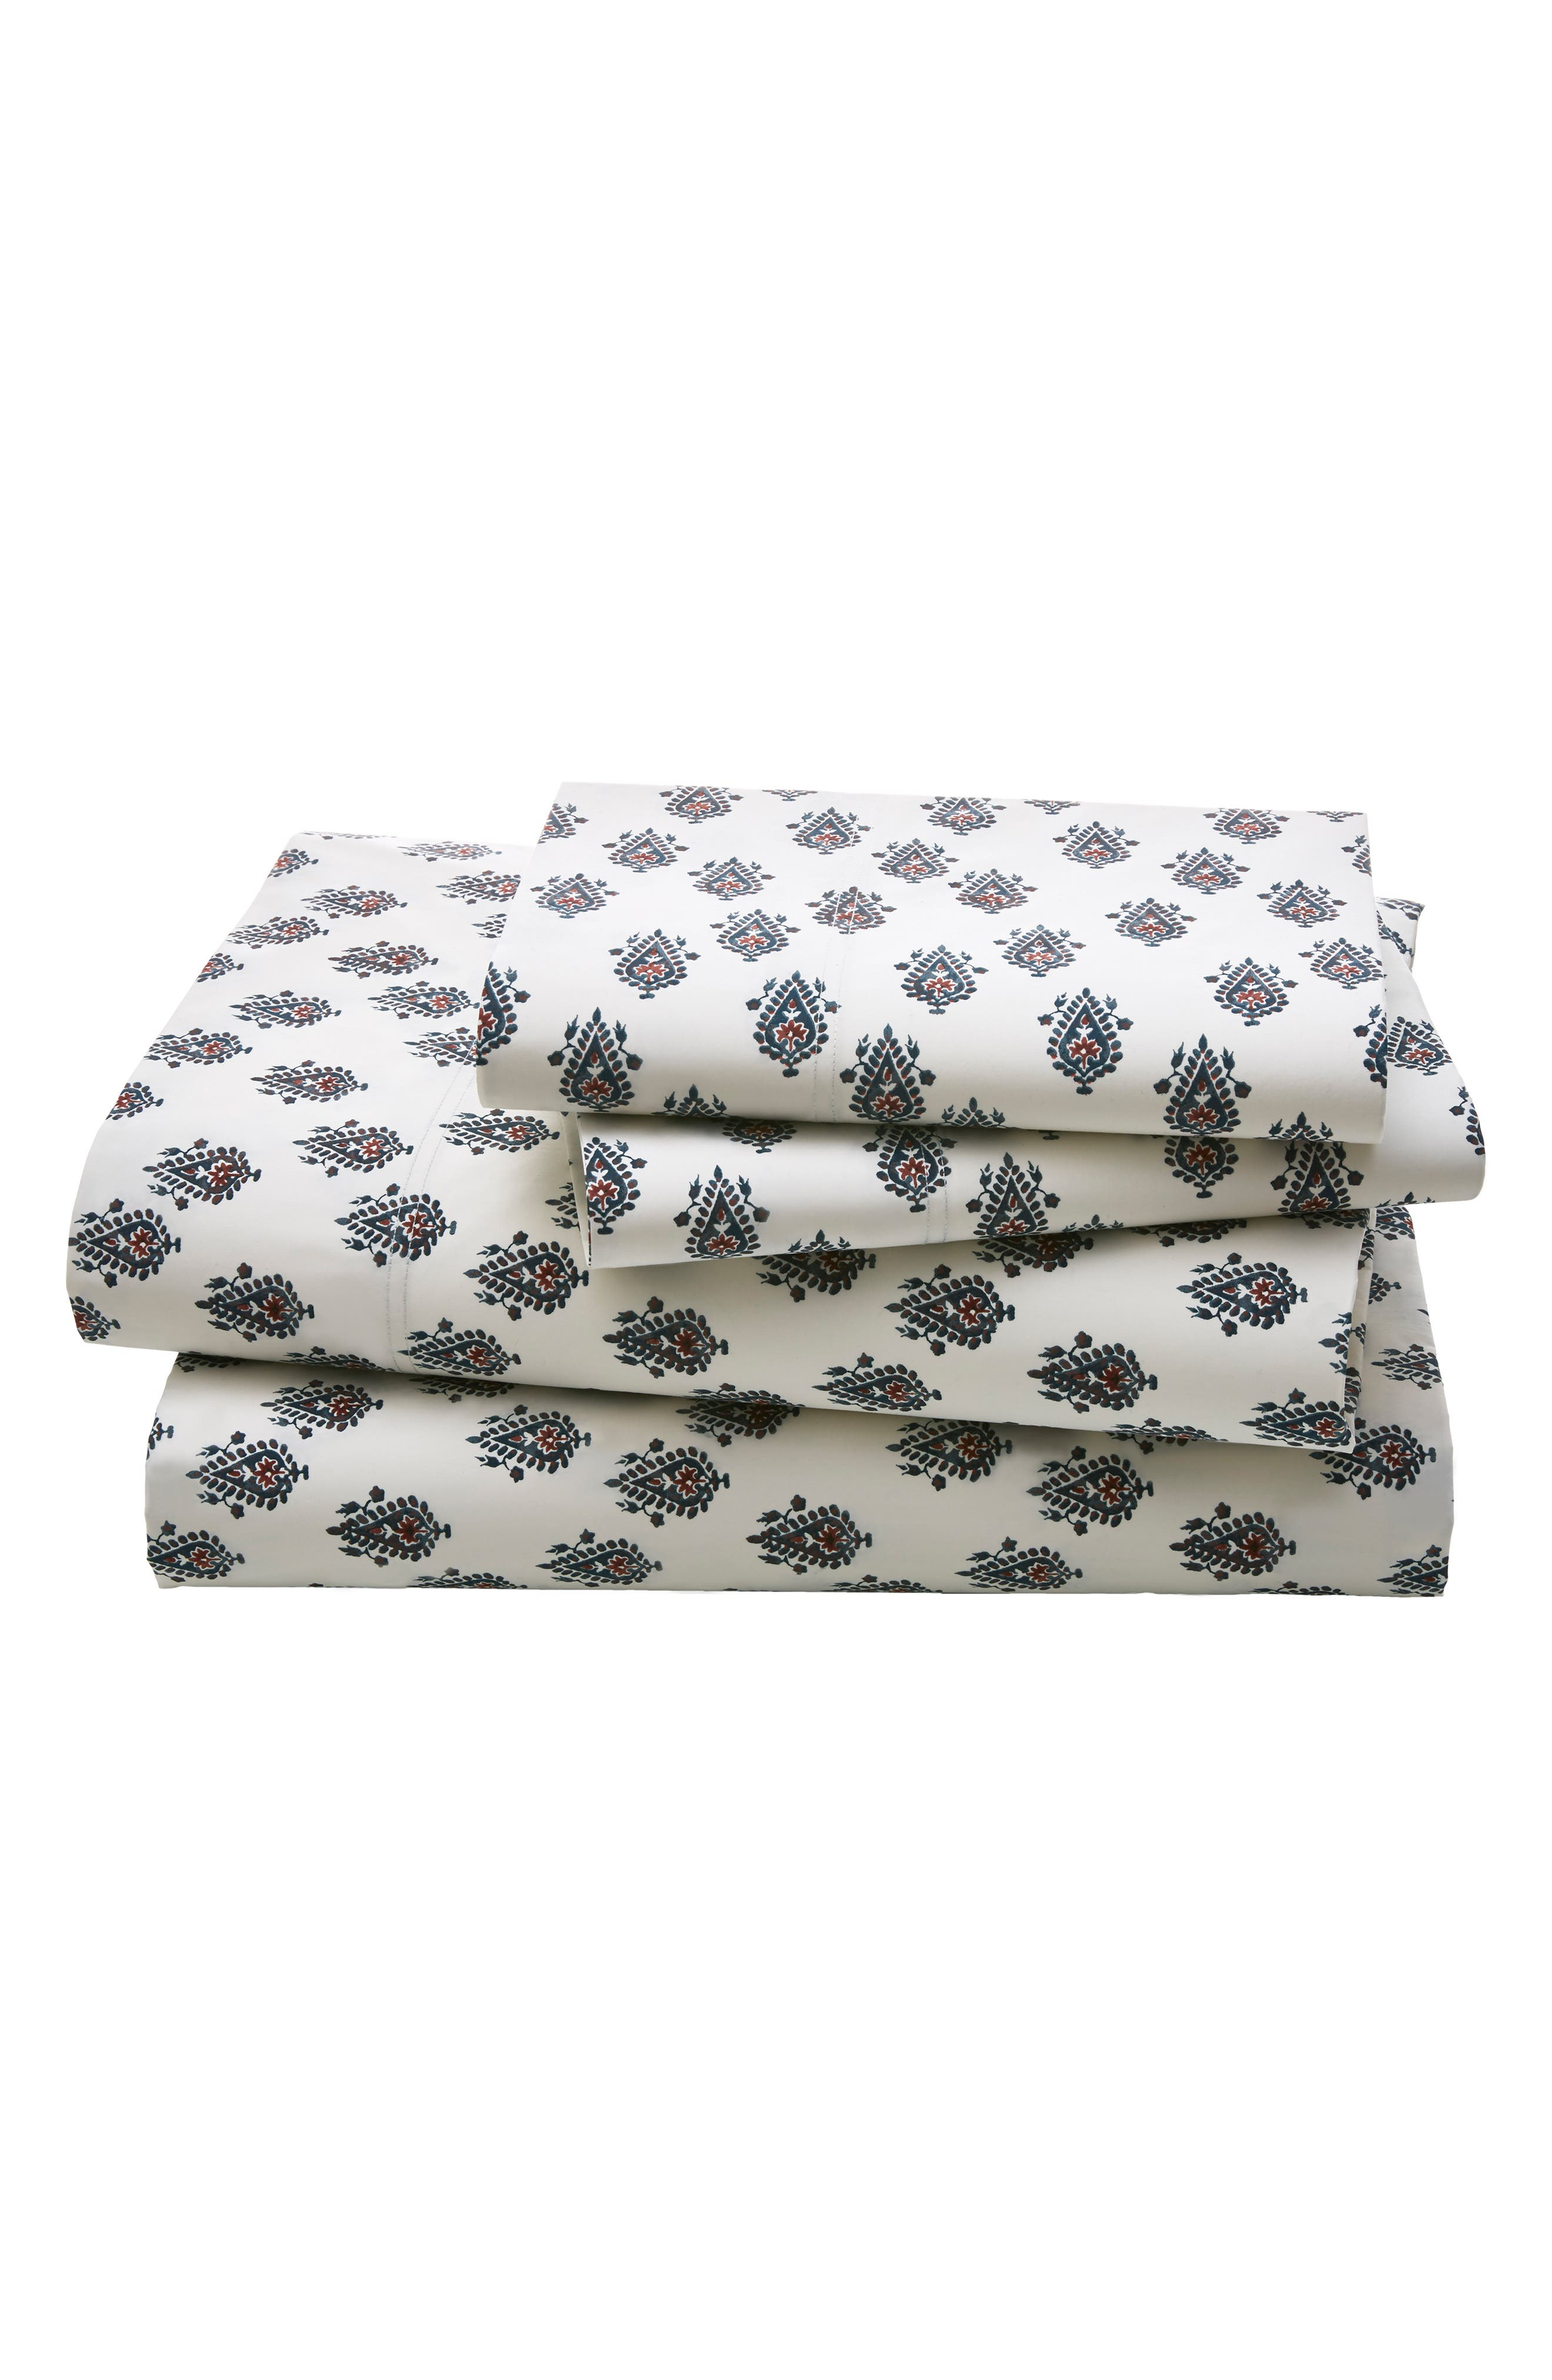 DwellStudio Flame Paisley 300 Thread Count Sheet Set